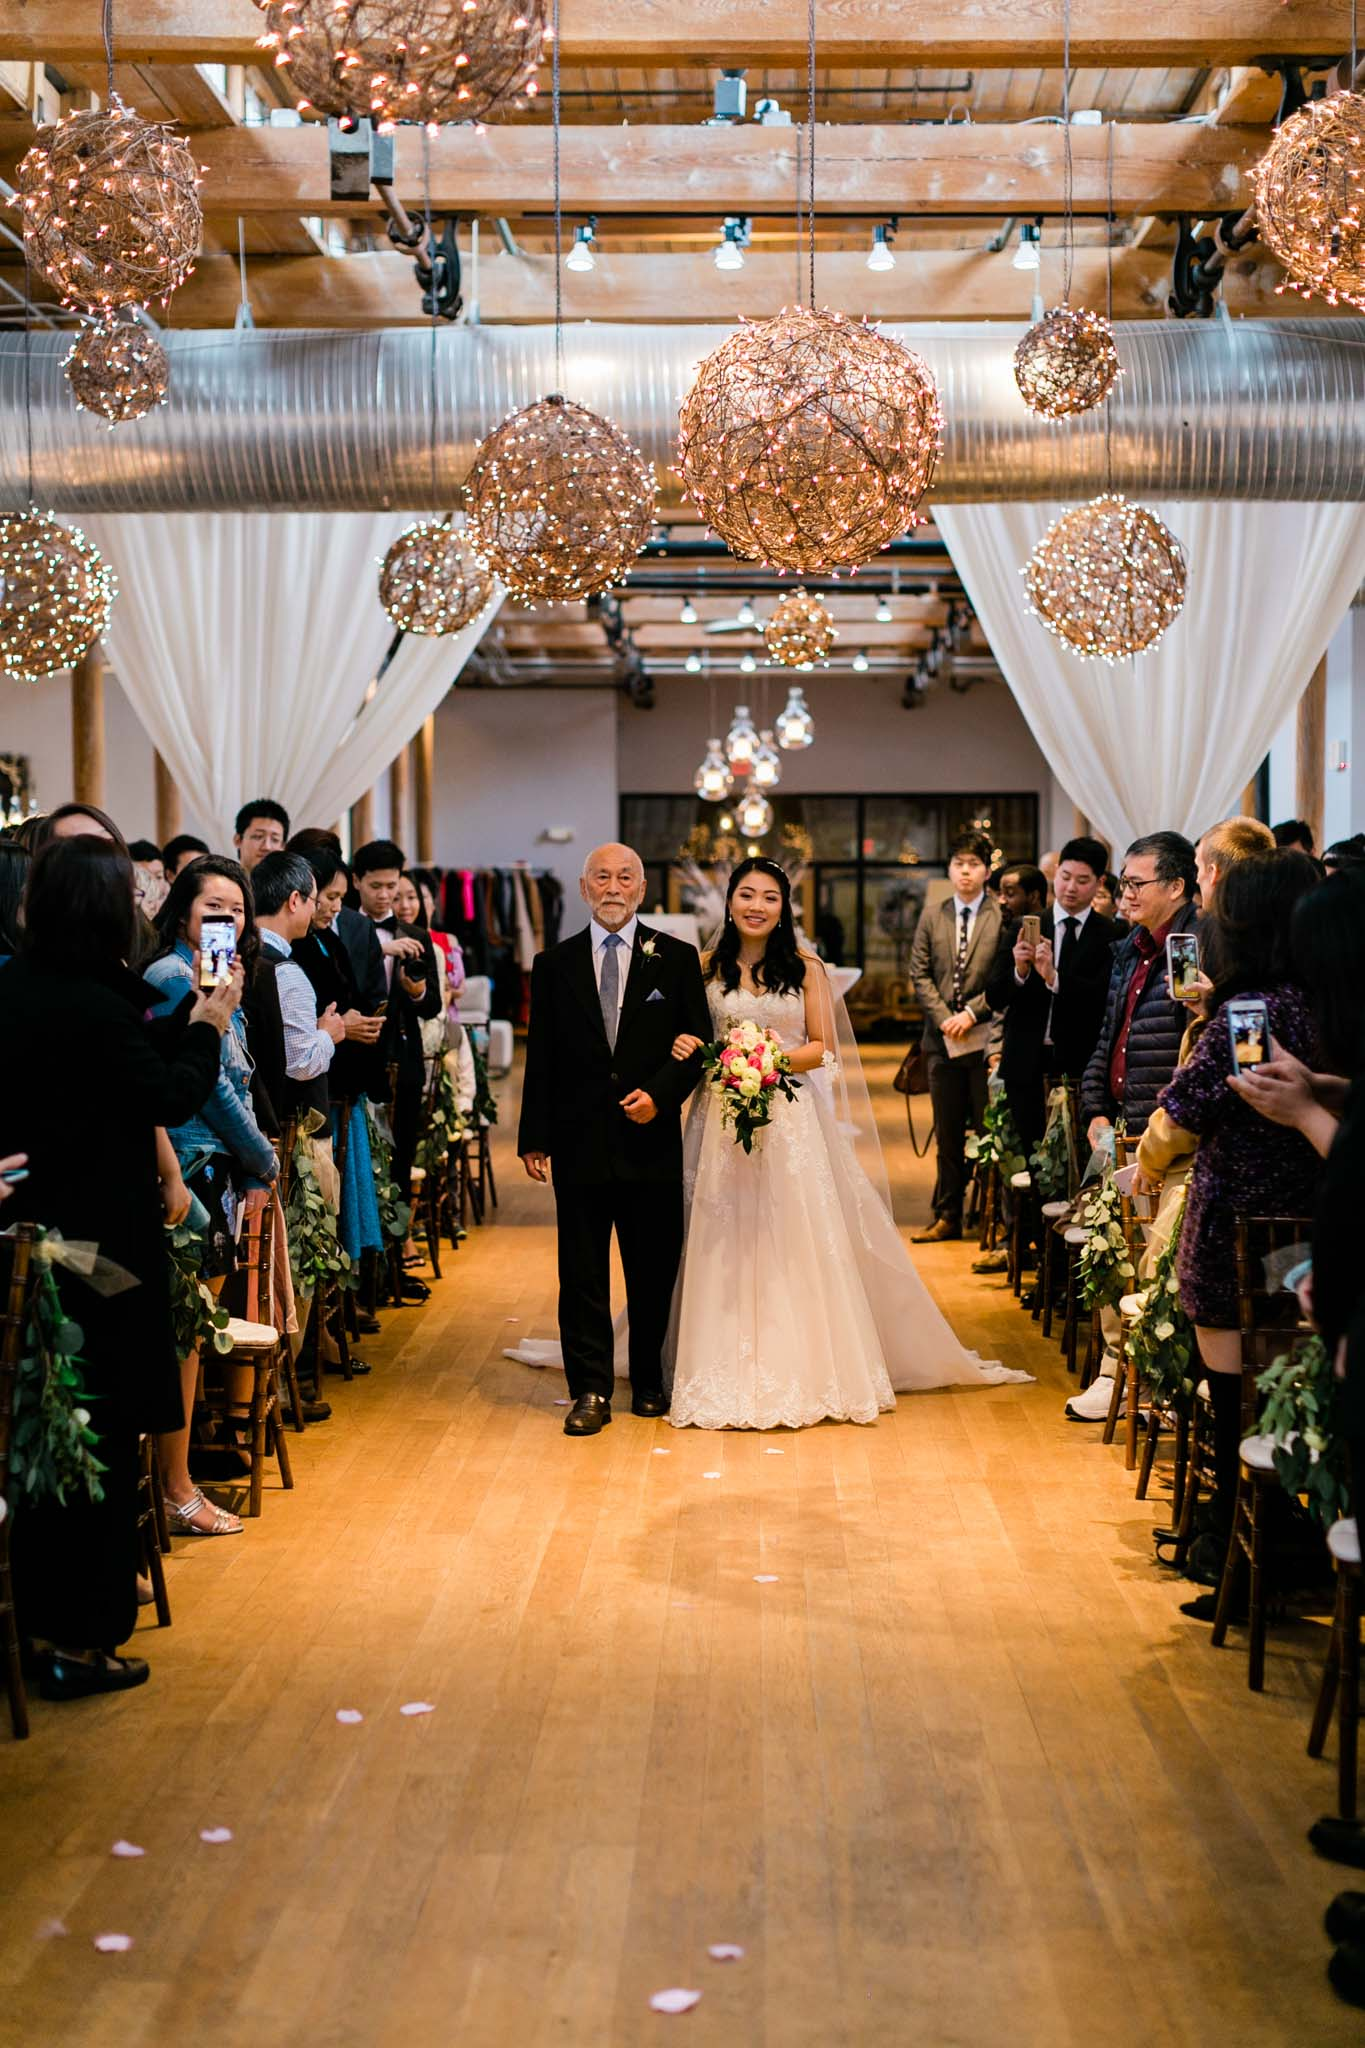 Bride walking down aisle at The Cotton Room | Durham Wedding Photographer | By G. Lin Photography